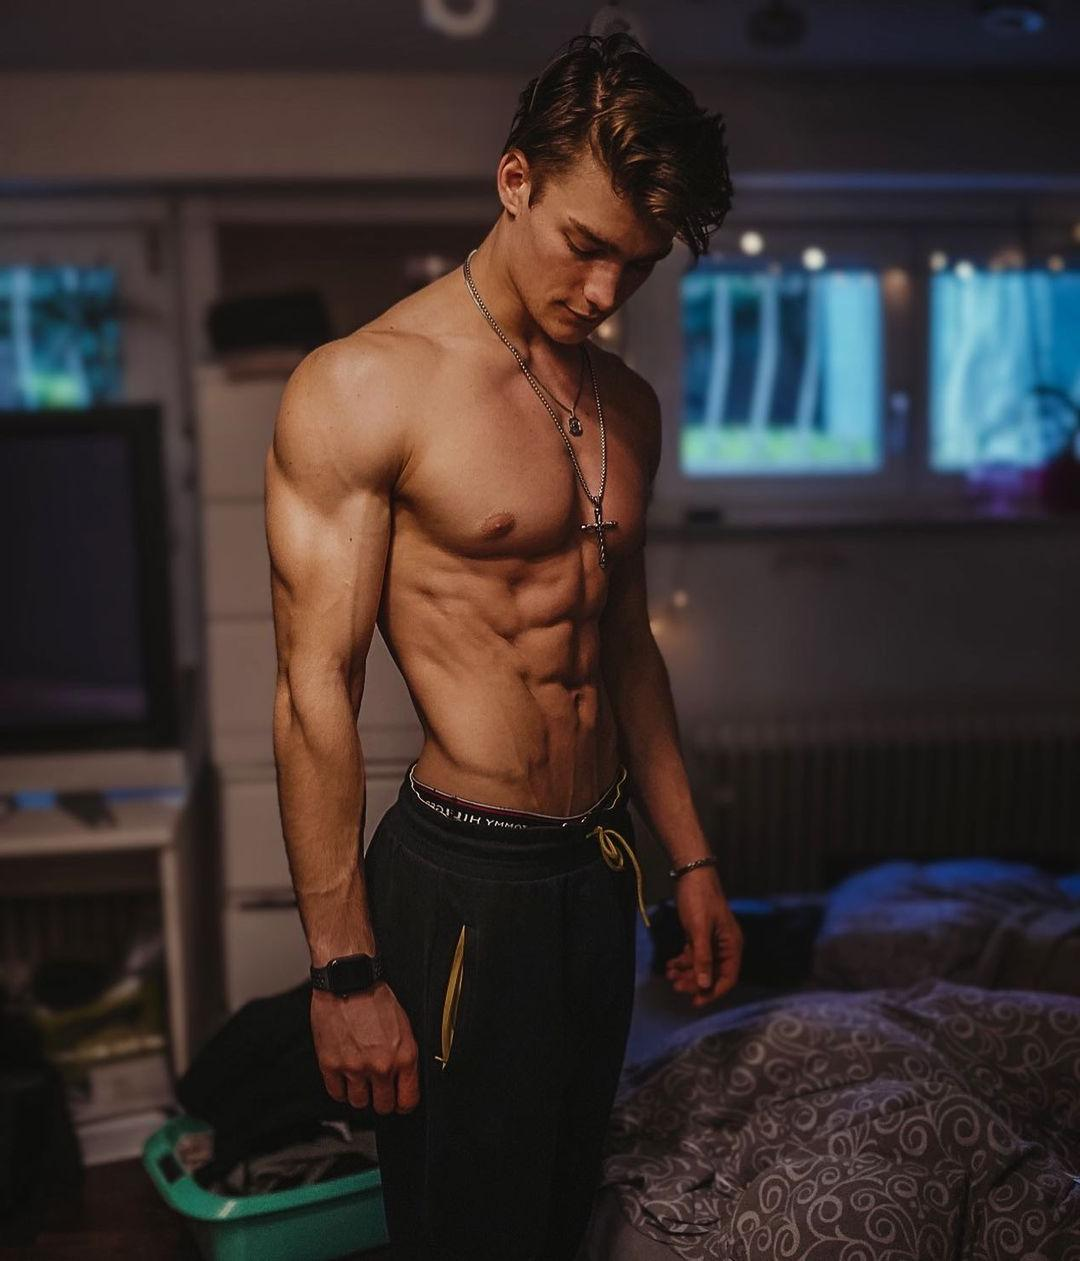 cute-young-shirtless-gay-twinks-luca-heubl-slim-body-abs